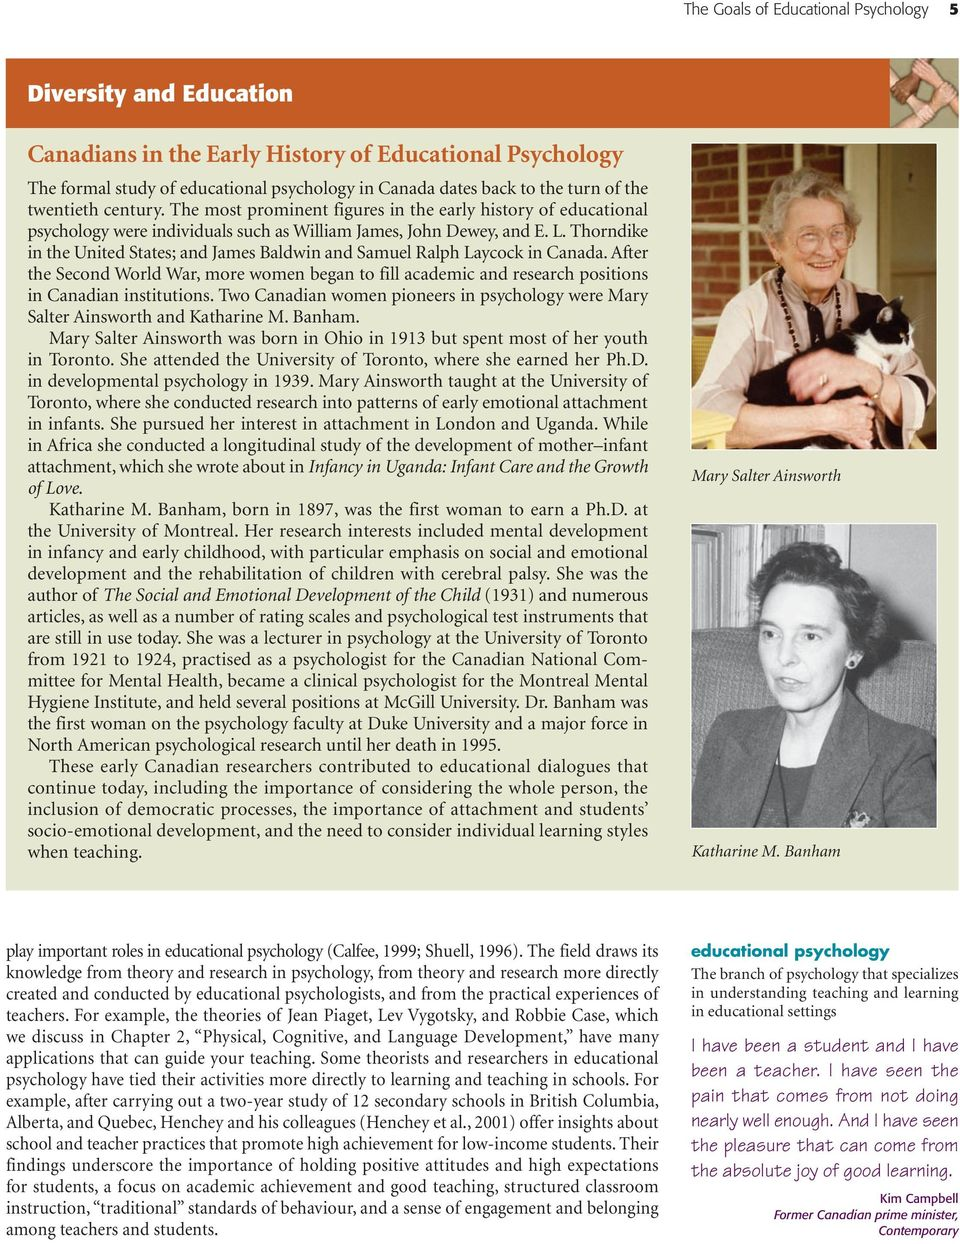 Thorndike in the United States; and James Baldwin and Samuel Ralph Laycock in Canada. After the Second World War, more women began to fill academic and research positions in Canadian institutions.